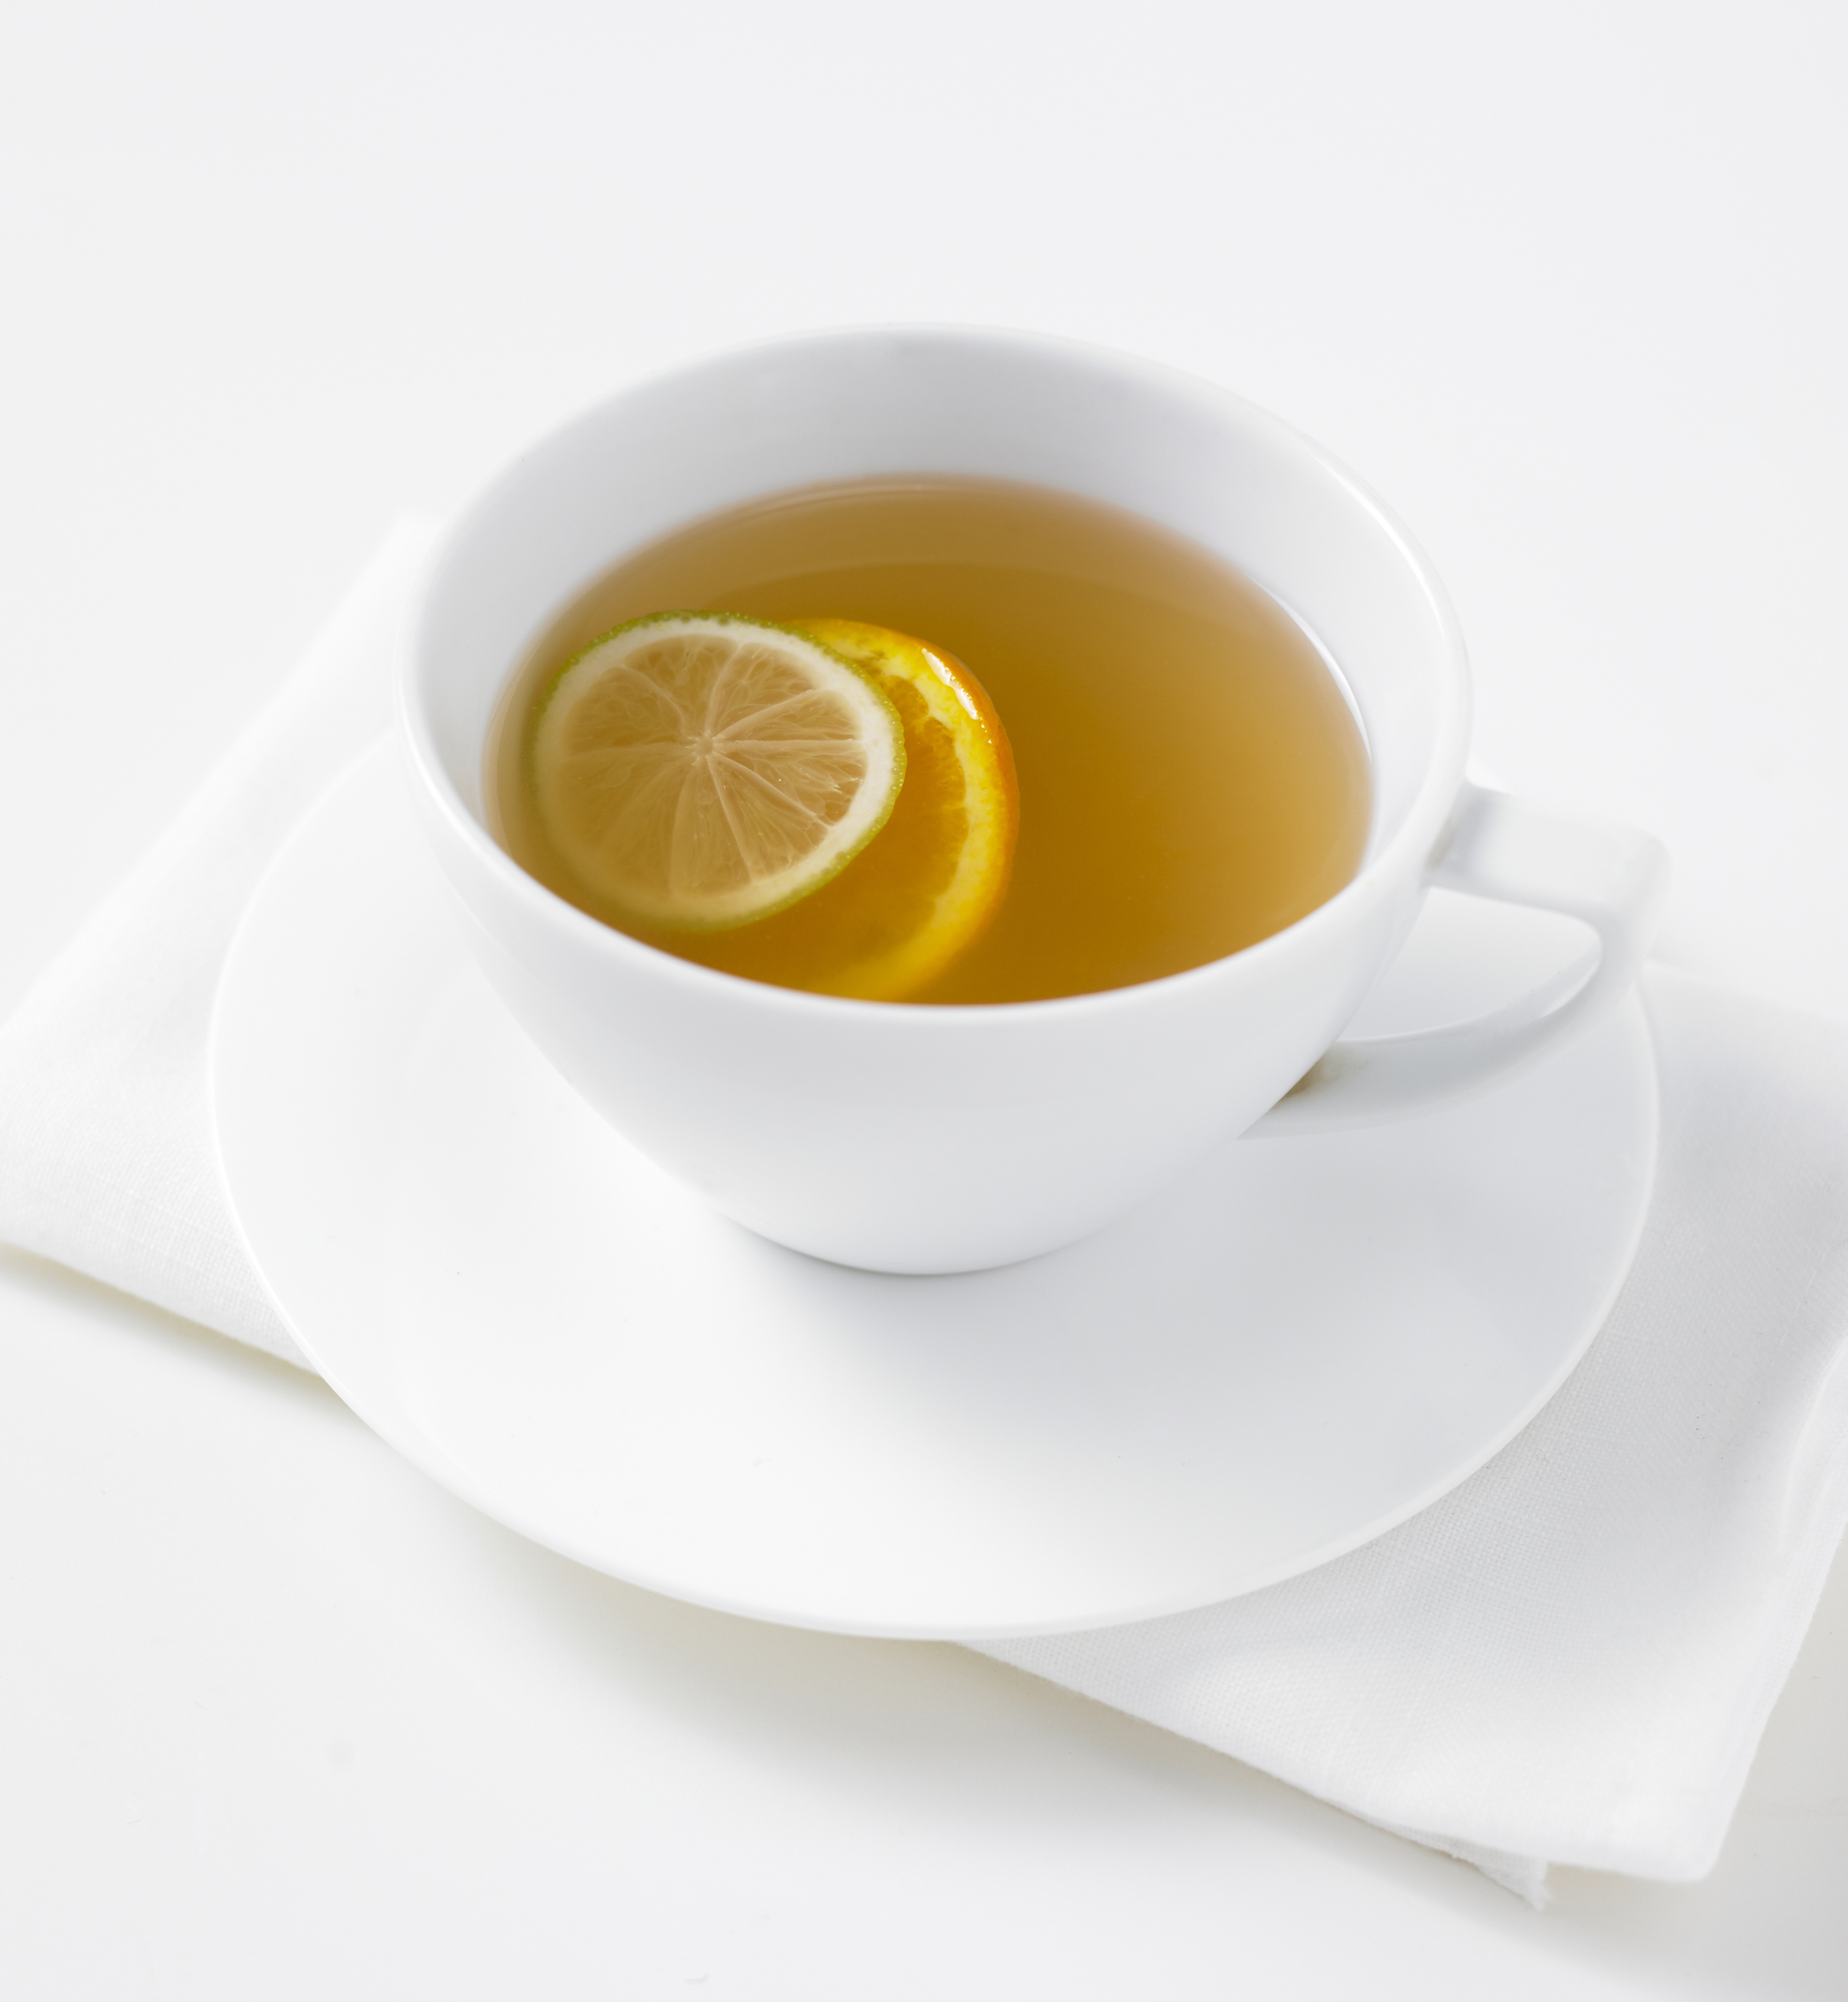 whats the best tea to drink to lose weight